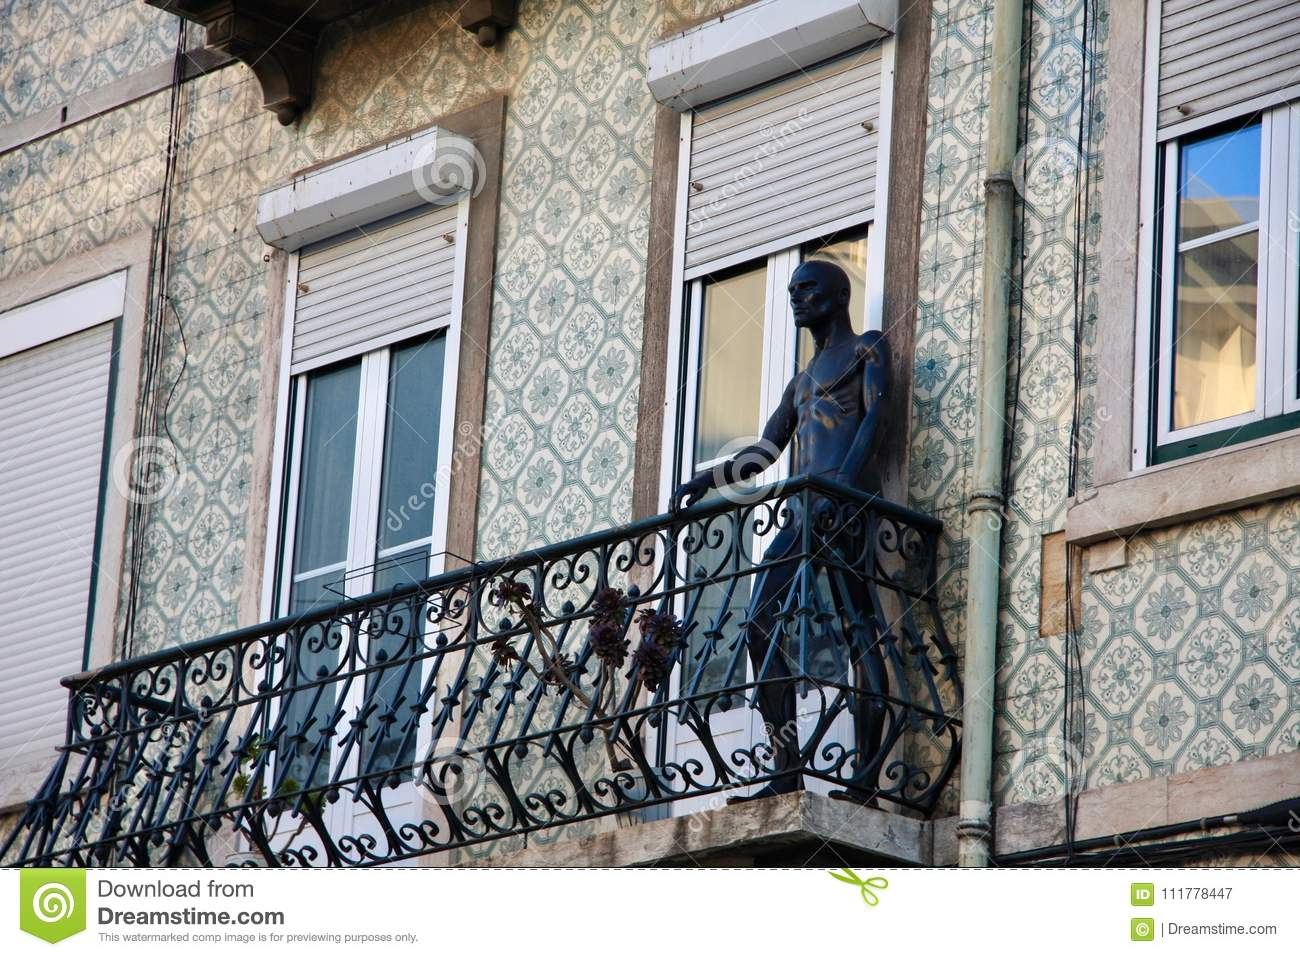 Black standing trade dammy on traditional portugal house balcony.